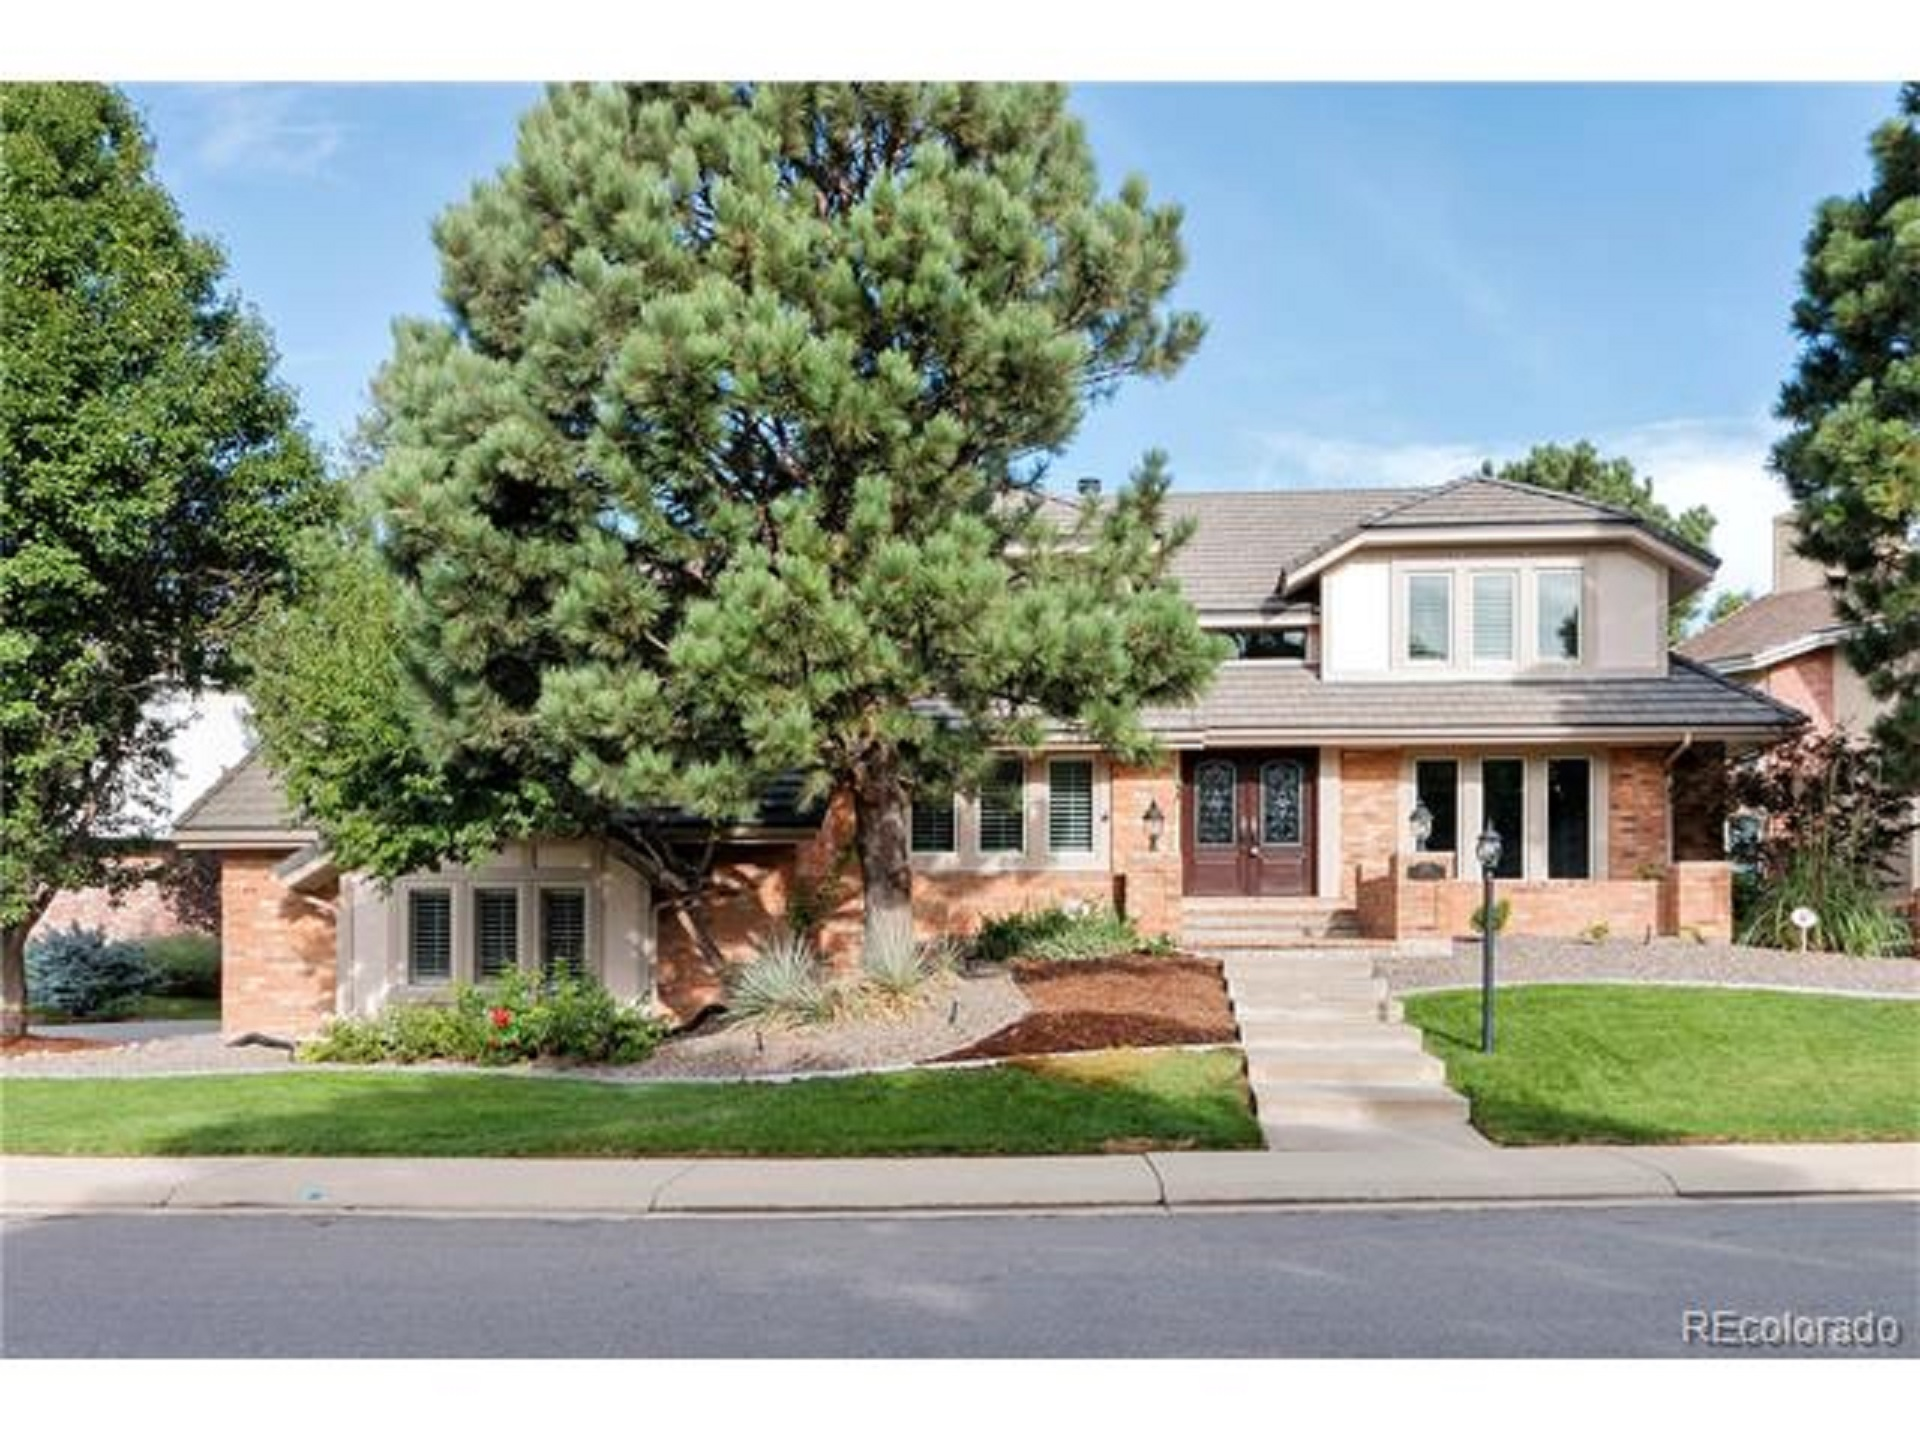 2171 S Parfet Dr, Lakewood, CO 80227